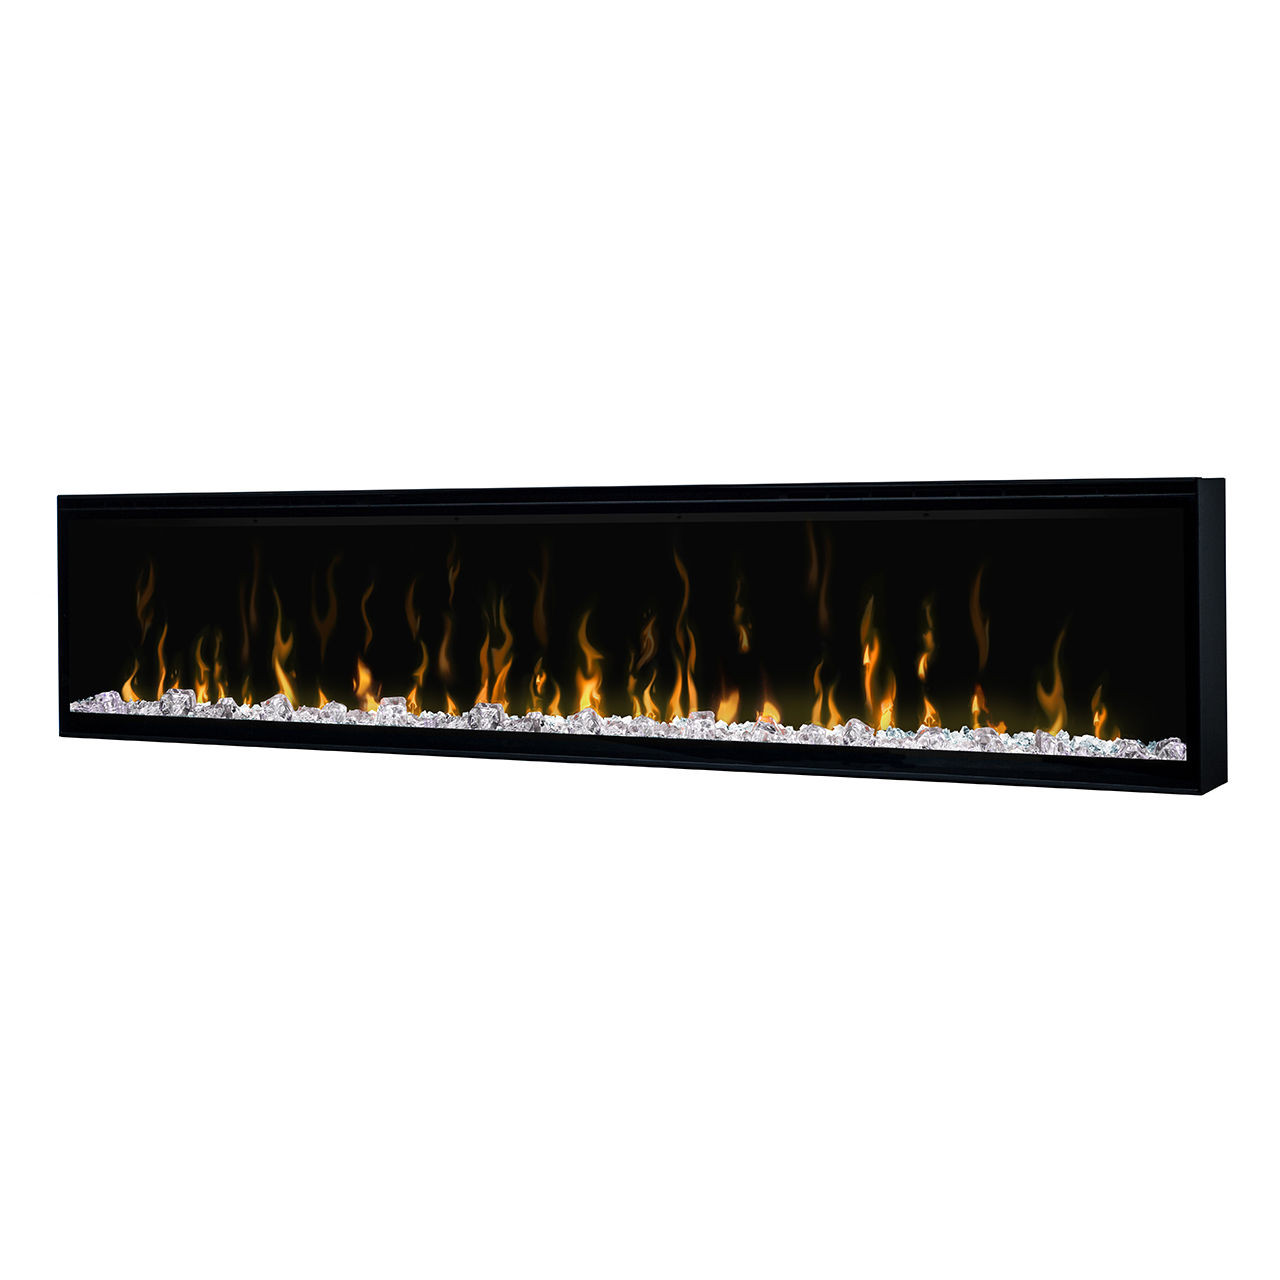 fireplacesrus net